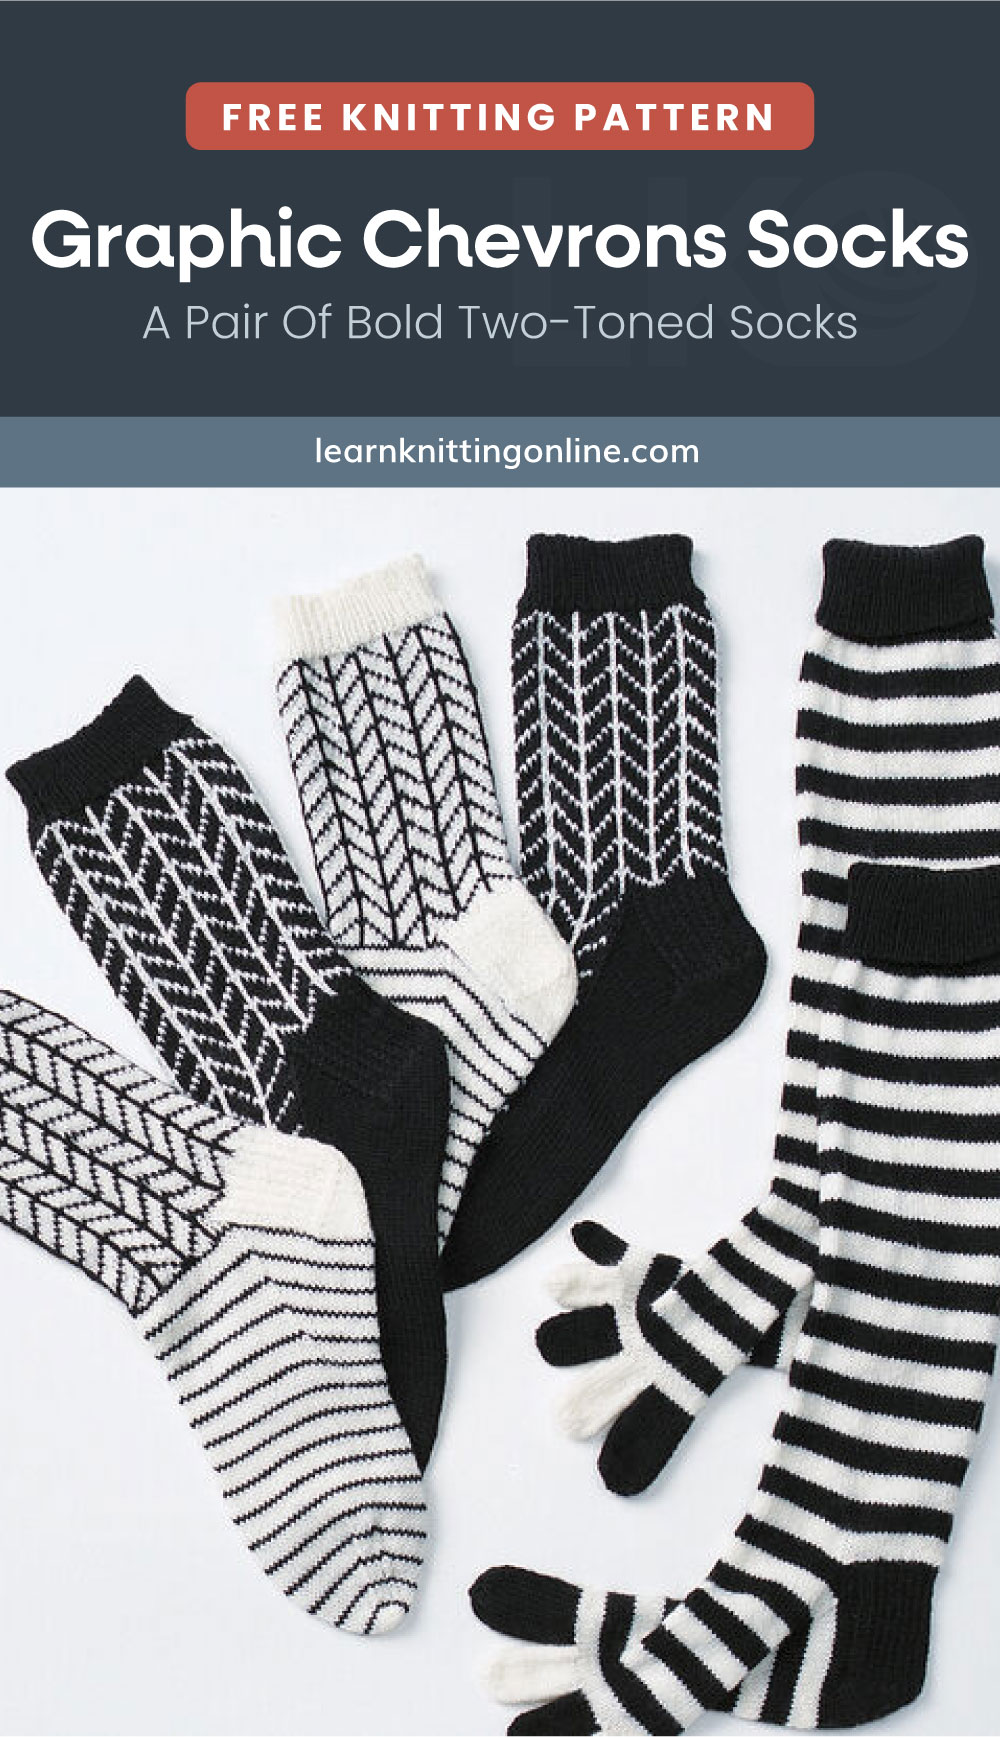 """Text area which says """"Free Knitting Pattern: Graphic Chevrons Socks - A Pair Of Bold Two-Toned Socks, learnknittingonline.com"""" followed by three pairs of black and white knitted socks with different chevron patterns"""